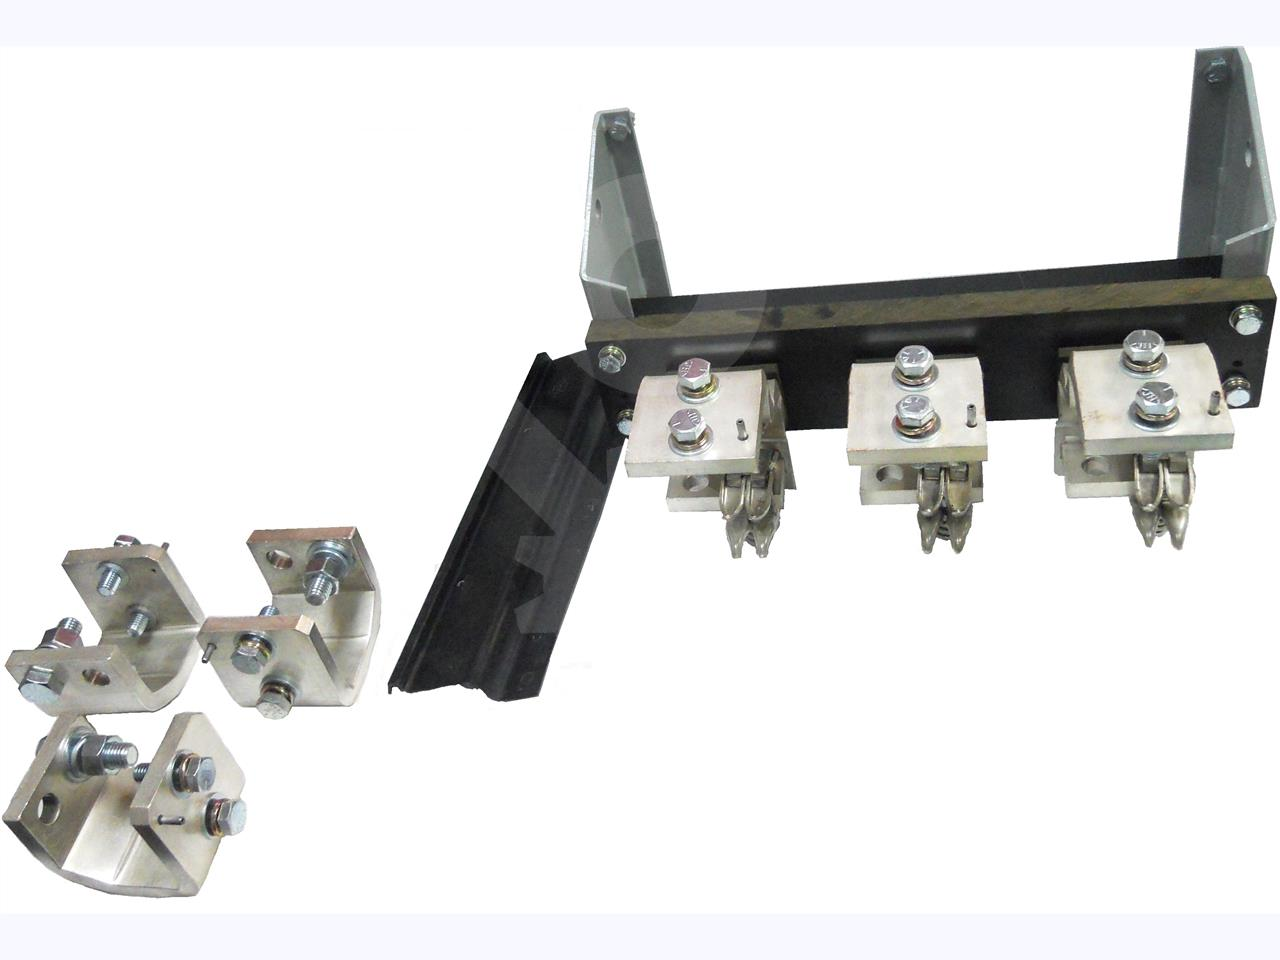 GE / General Electric 2000A FUSE RACK ASSEMBLY FOR AKR-30 / AKR-50, 2000A FUSE OR LESS